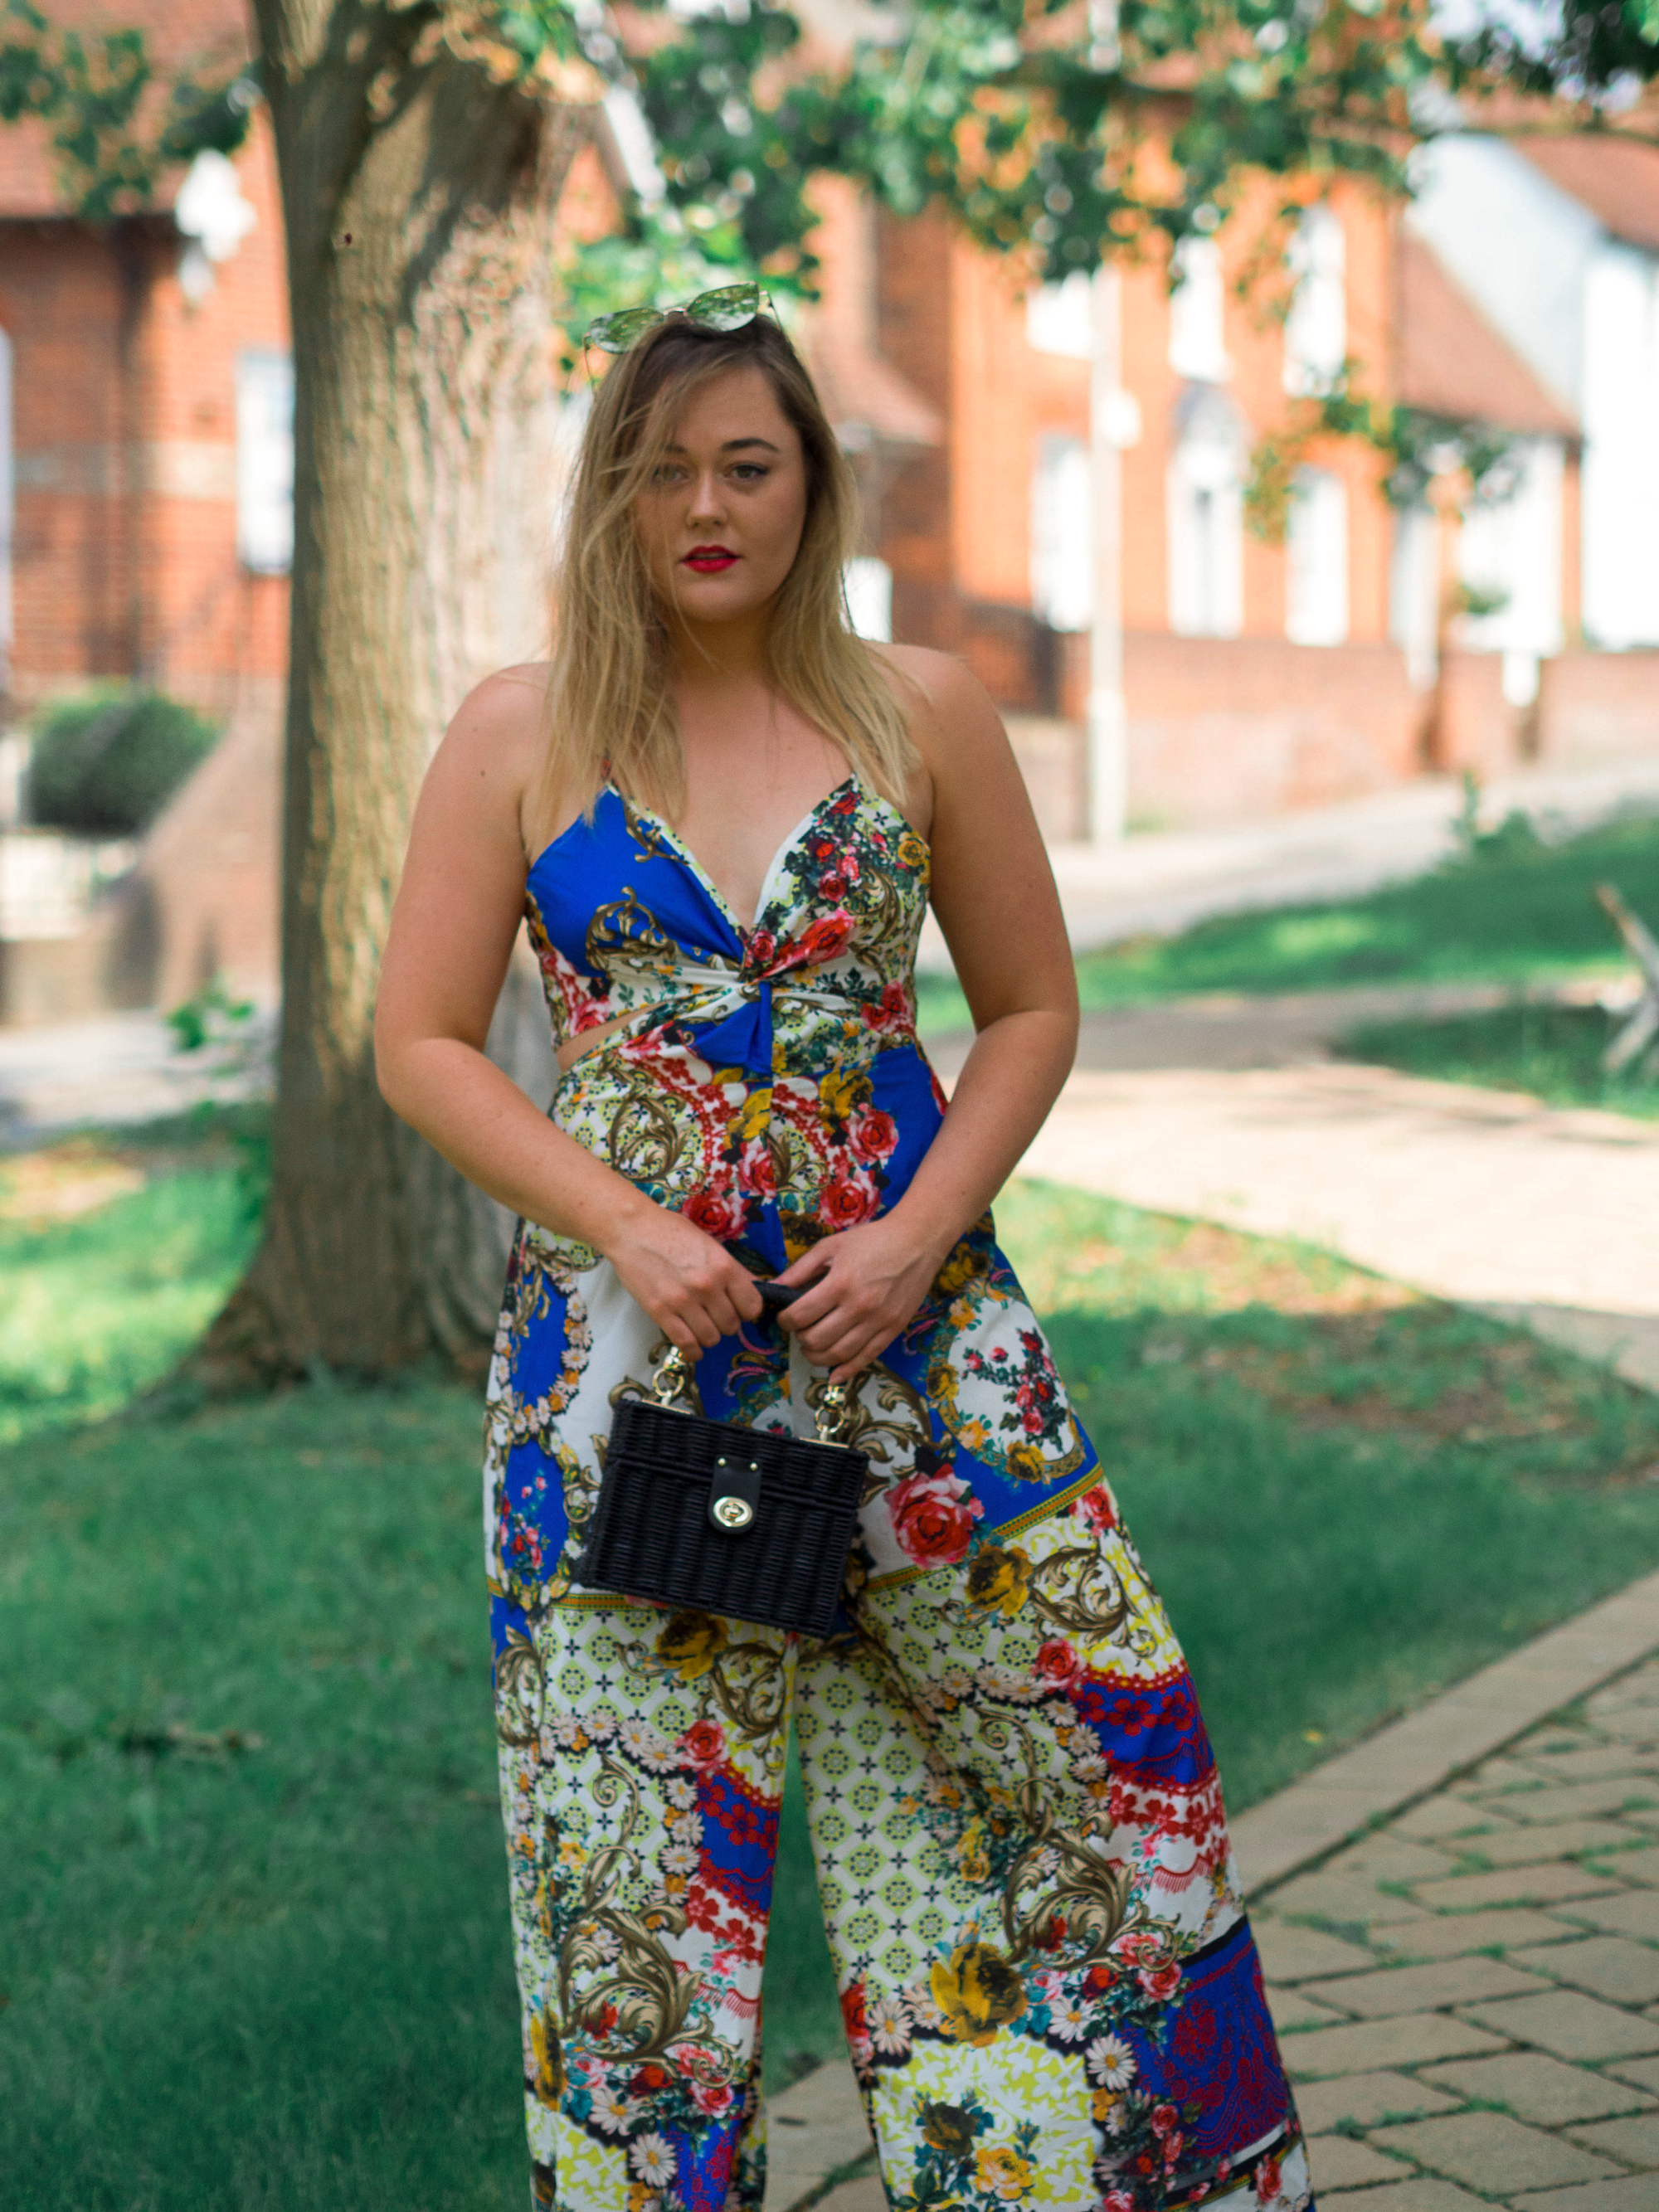 Hannah wears a scarf print jumpsuit in blue, red and gold baroque pattern. She holds a minaudiere box bag in black. Dolce & Gabbana designer inspired high-street look. Style inspiration. Fashion blogger. Photos taken by D Rayner photo